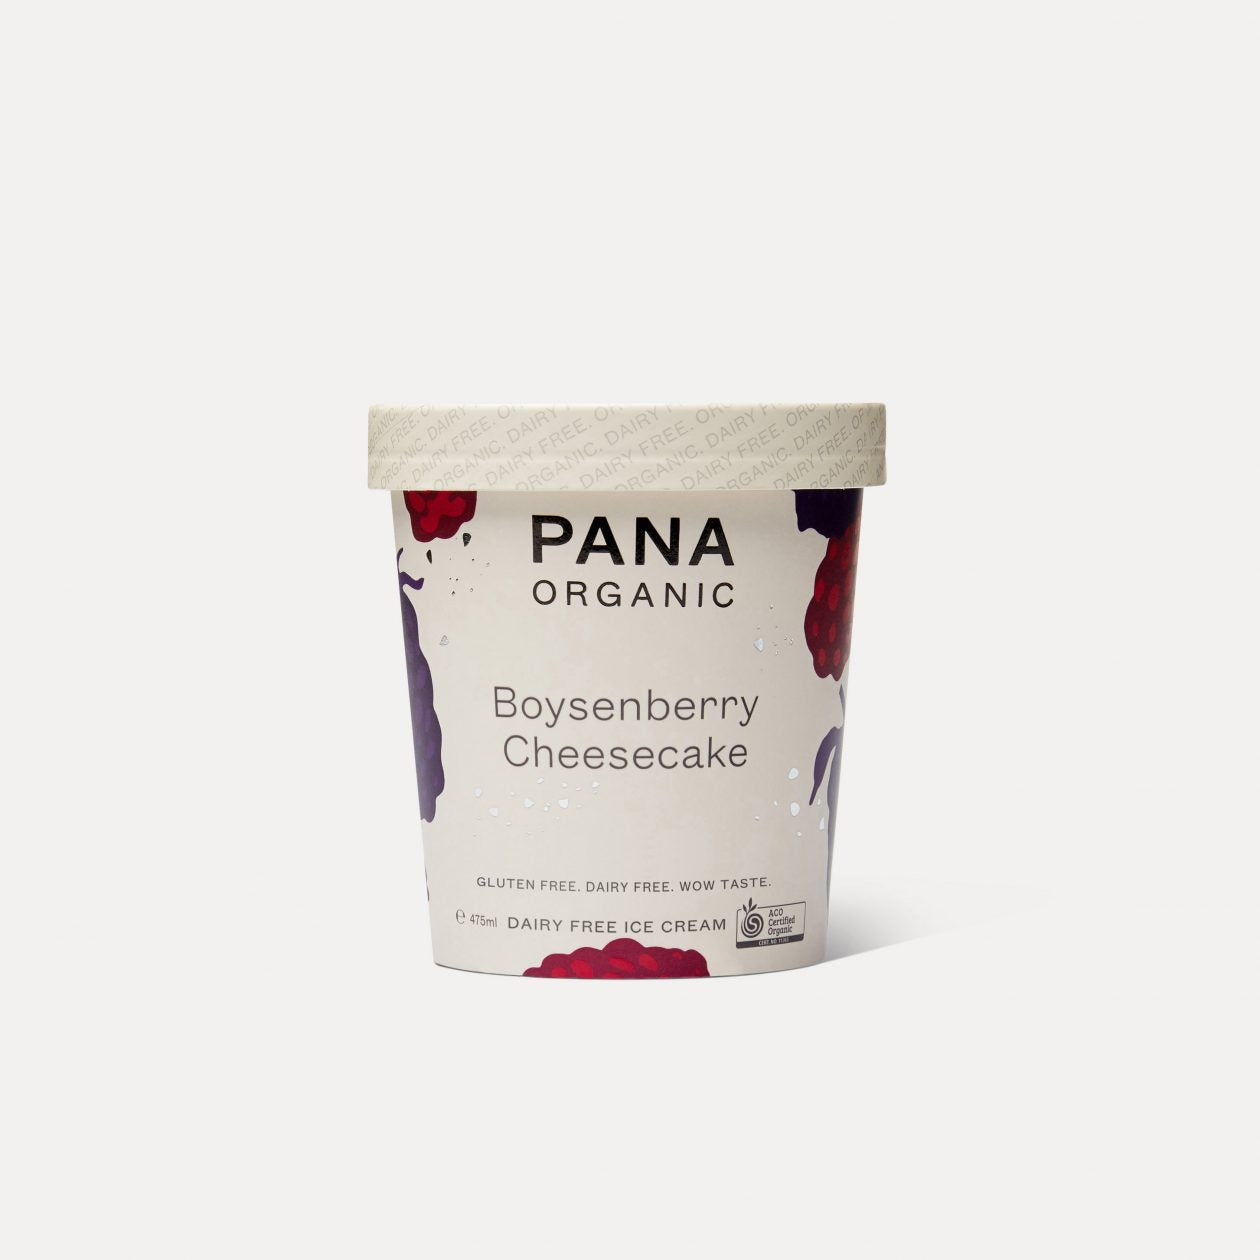 PANA ORGANIC Boysenberry Cheesecake Dairy Free Ice Cream 475ml-Groceries-PANA Organic-Fresh Connection